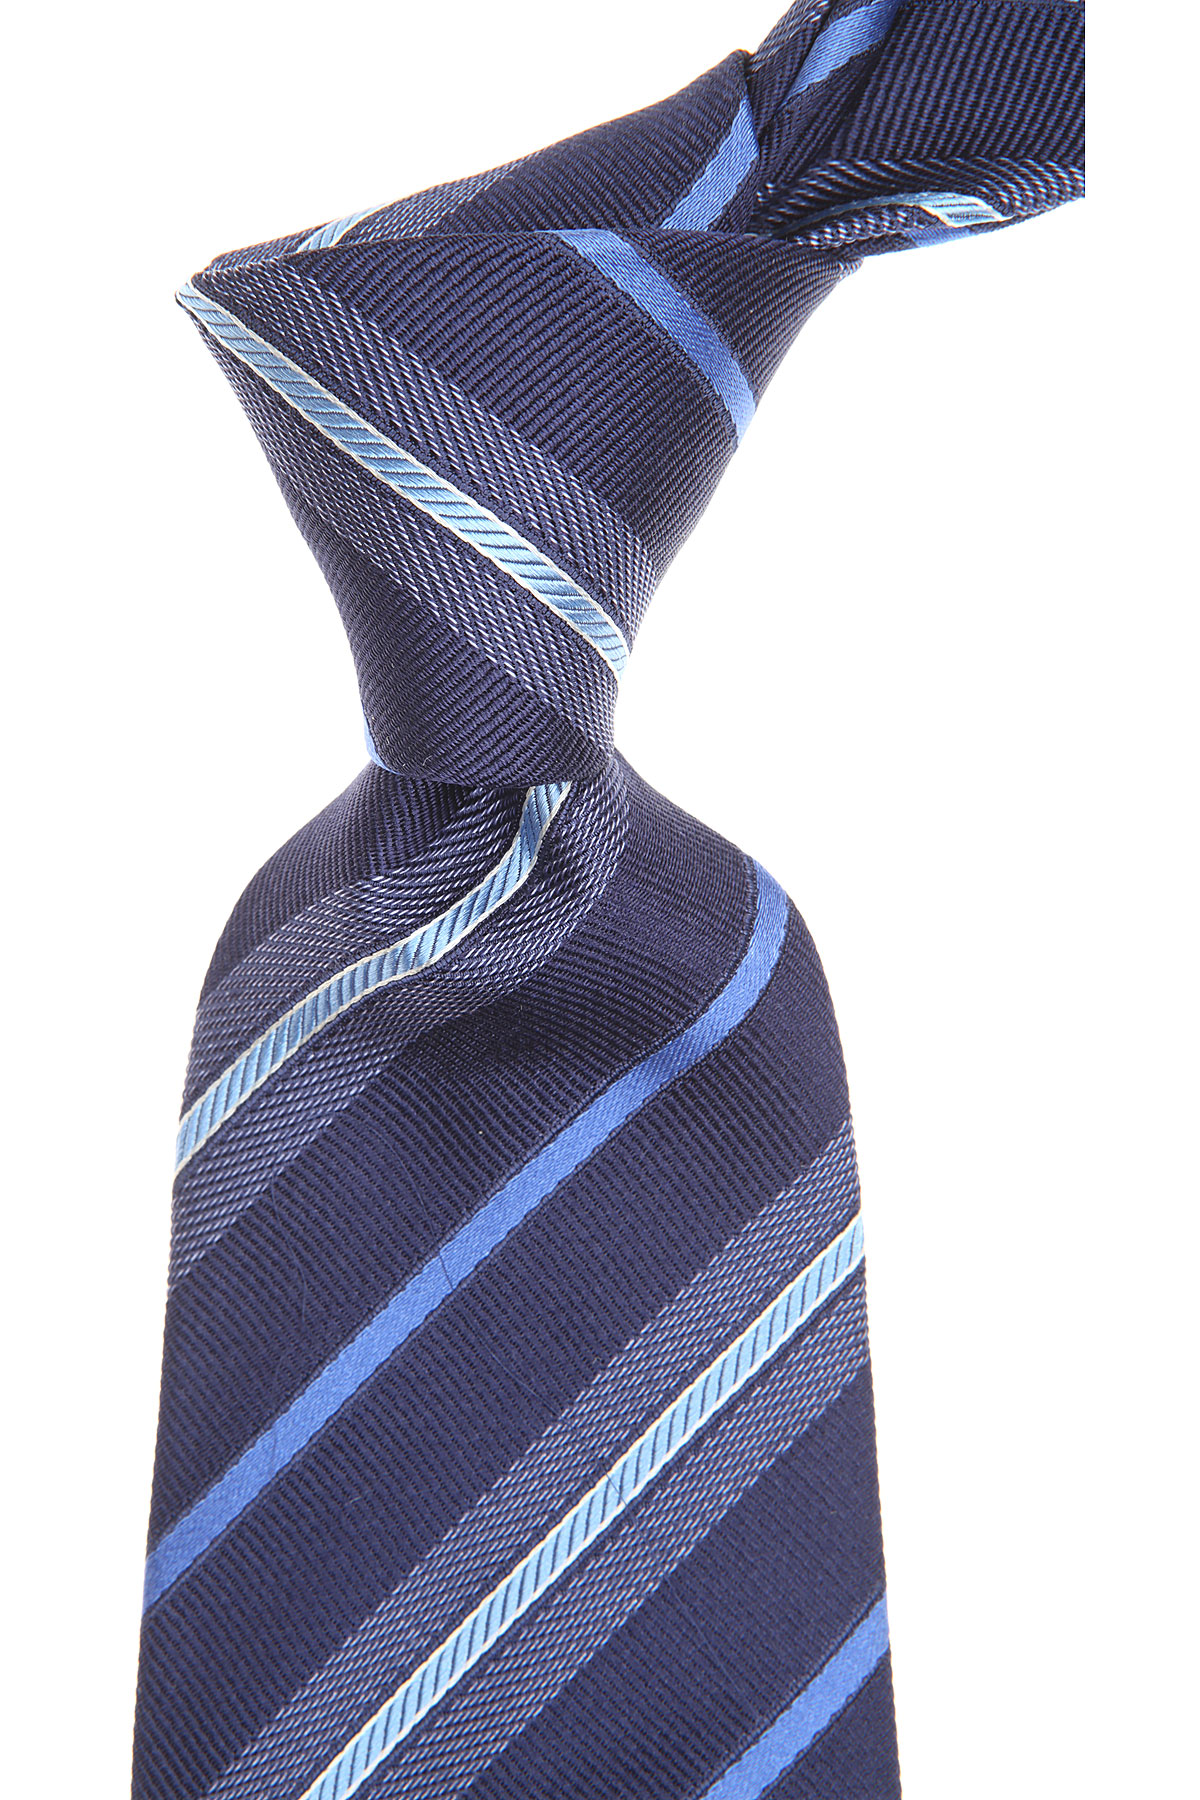 S.T. Dupont Ties On Sale, Midnight Blue, Silk, 2019